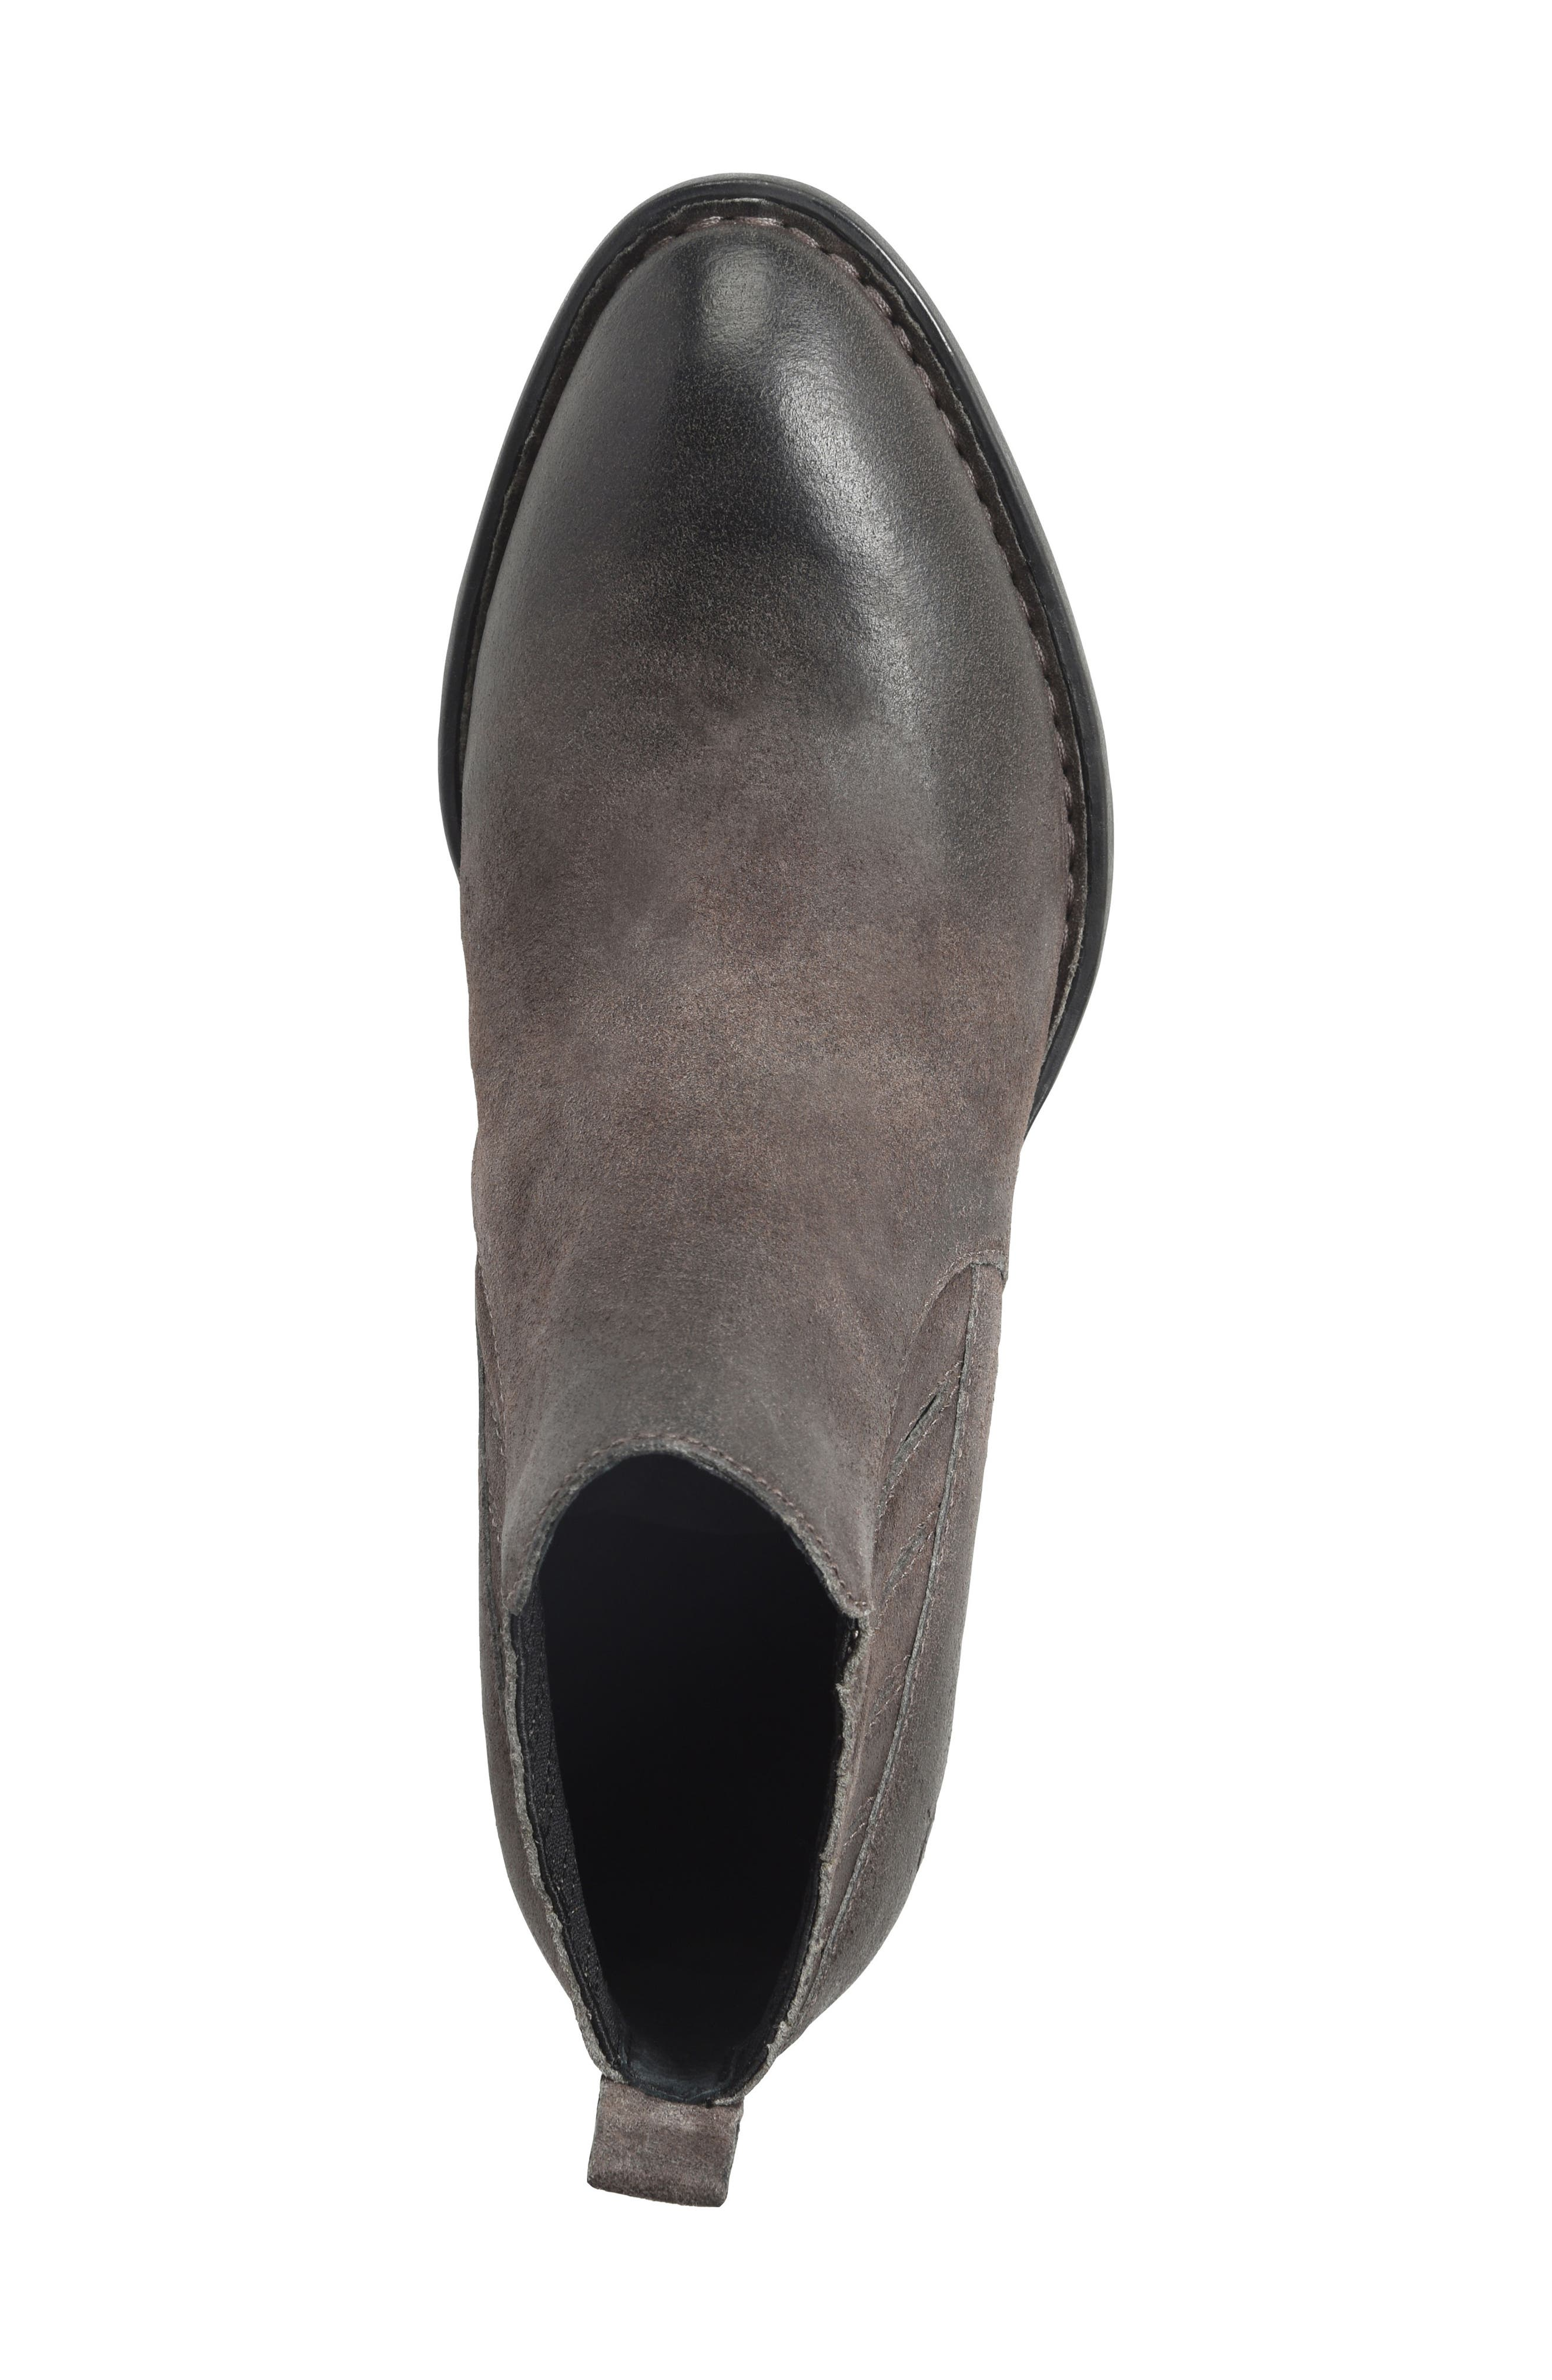 Beebe Bootie,                             Alternate thumbnail 5, color,                             Grey Distressed Leather